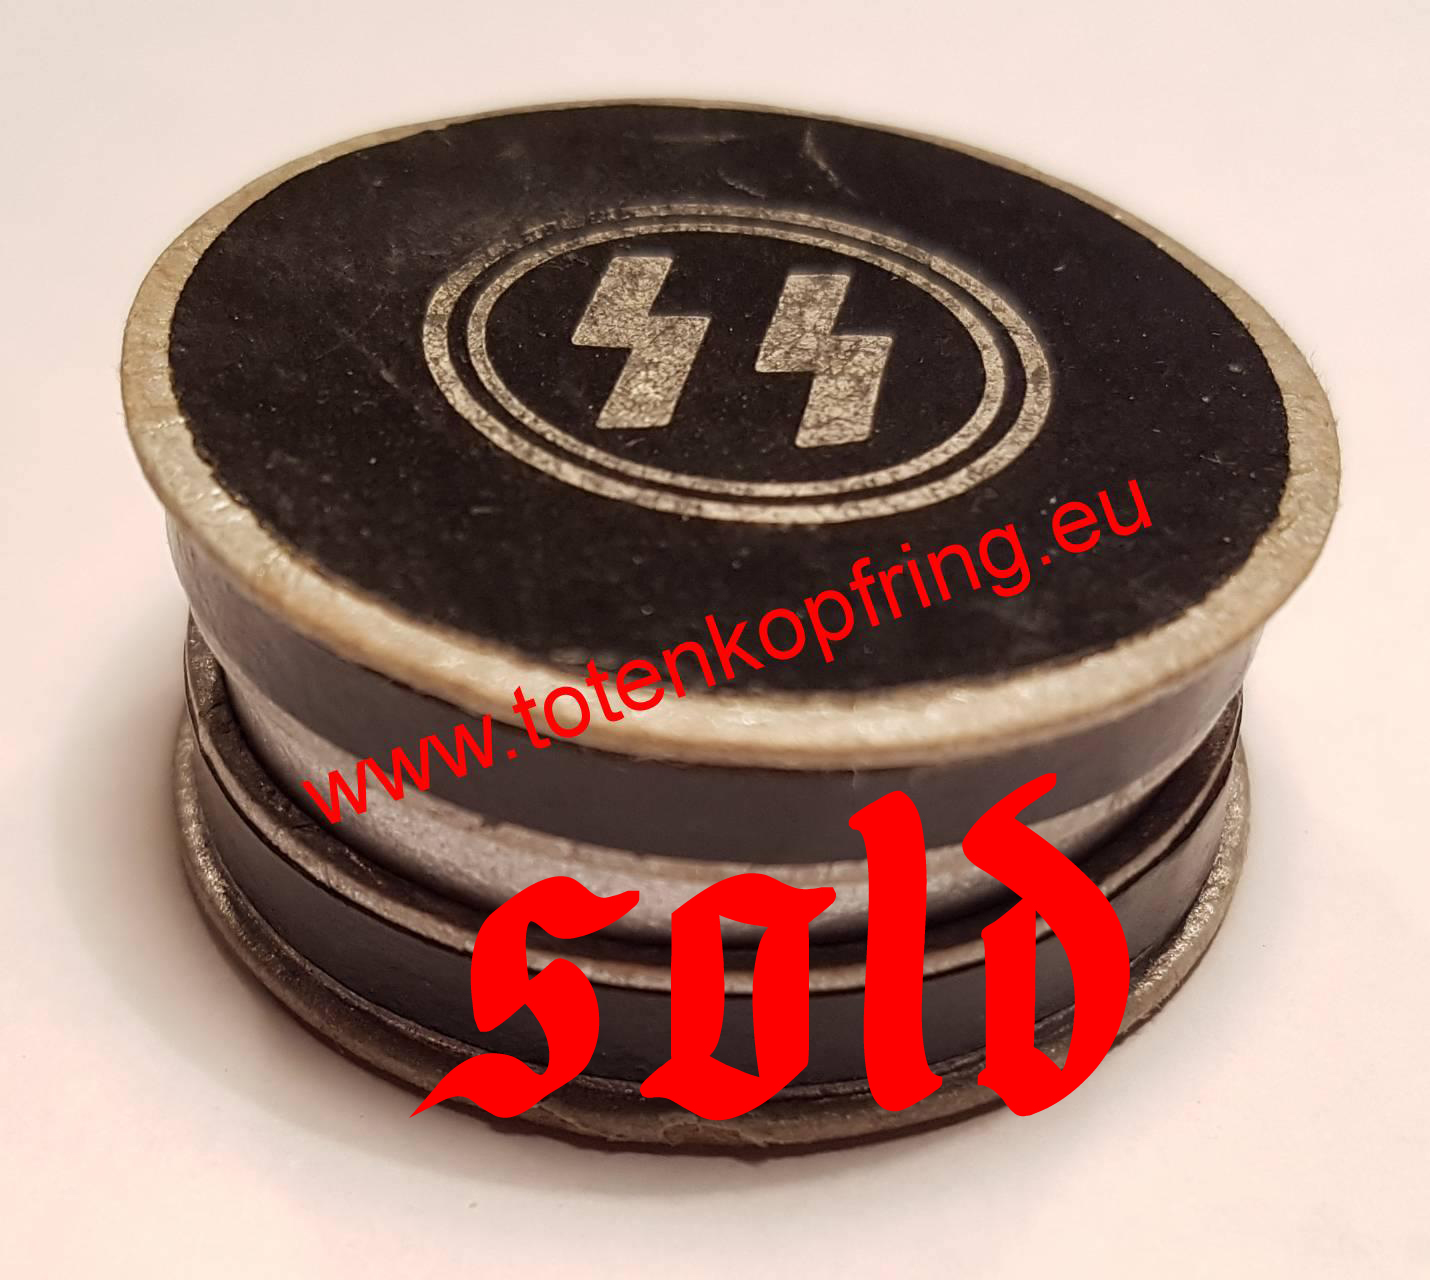 Box for SS-Totenkopfring